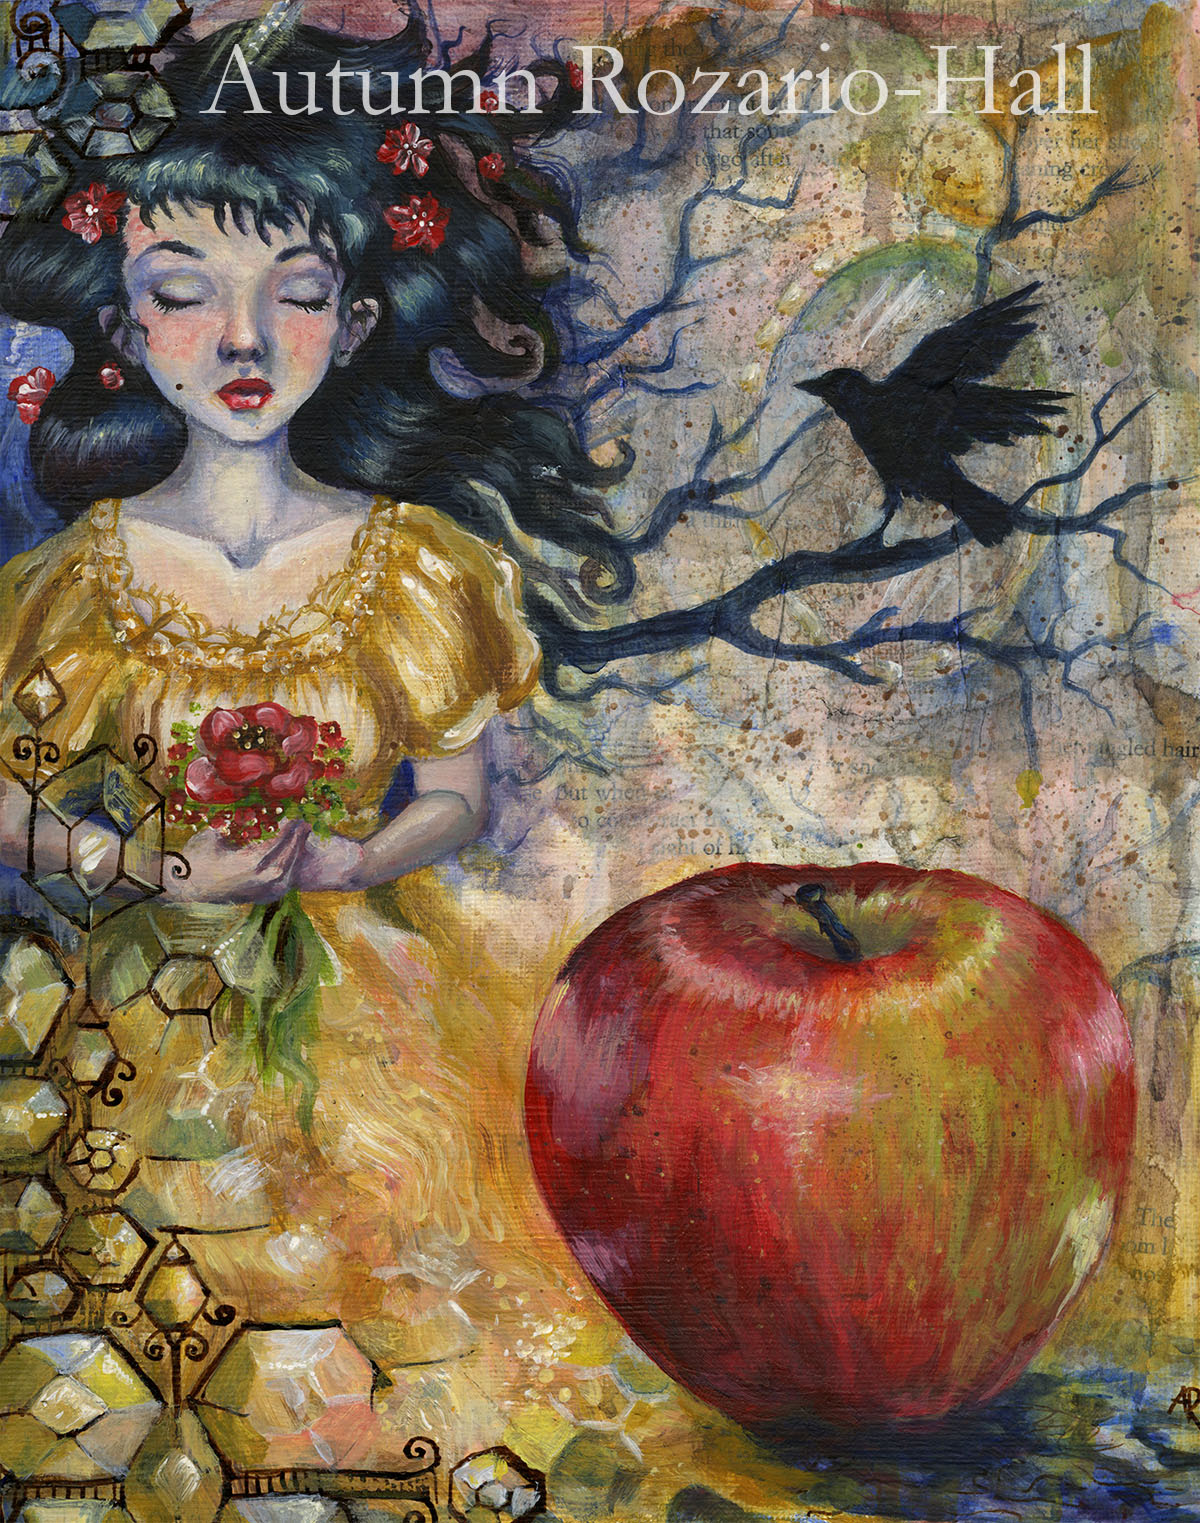 Allegory of Snow White